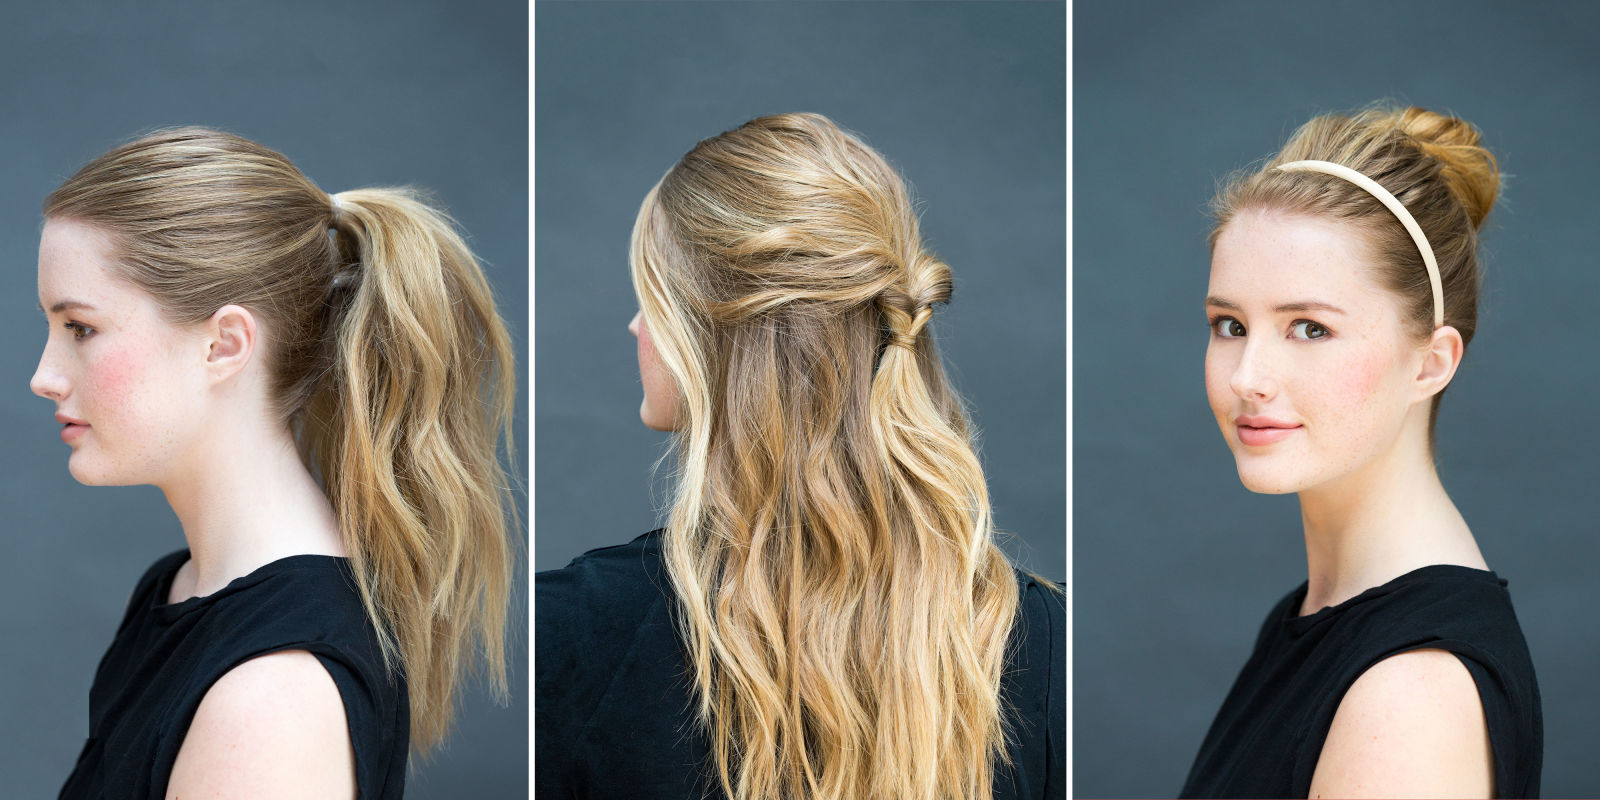 Terrific 10 Easy Hairstyles You Can Do In 10 Seconds Diy Hairstyles Short Hairstyles Gunalazisus